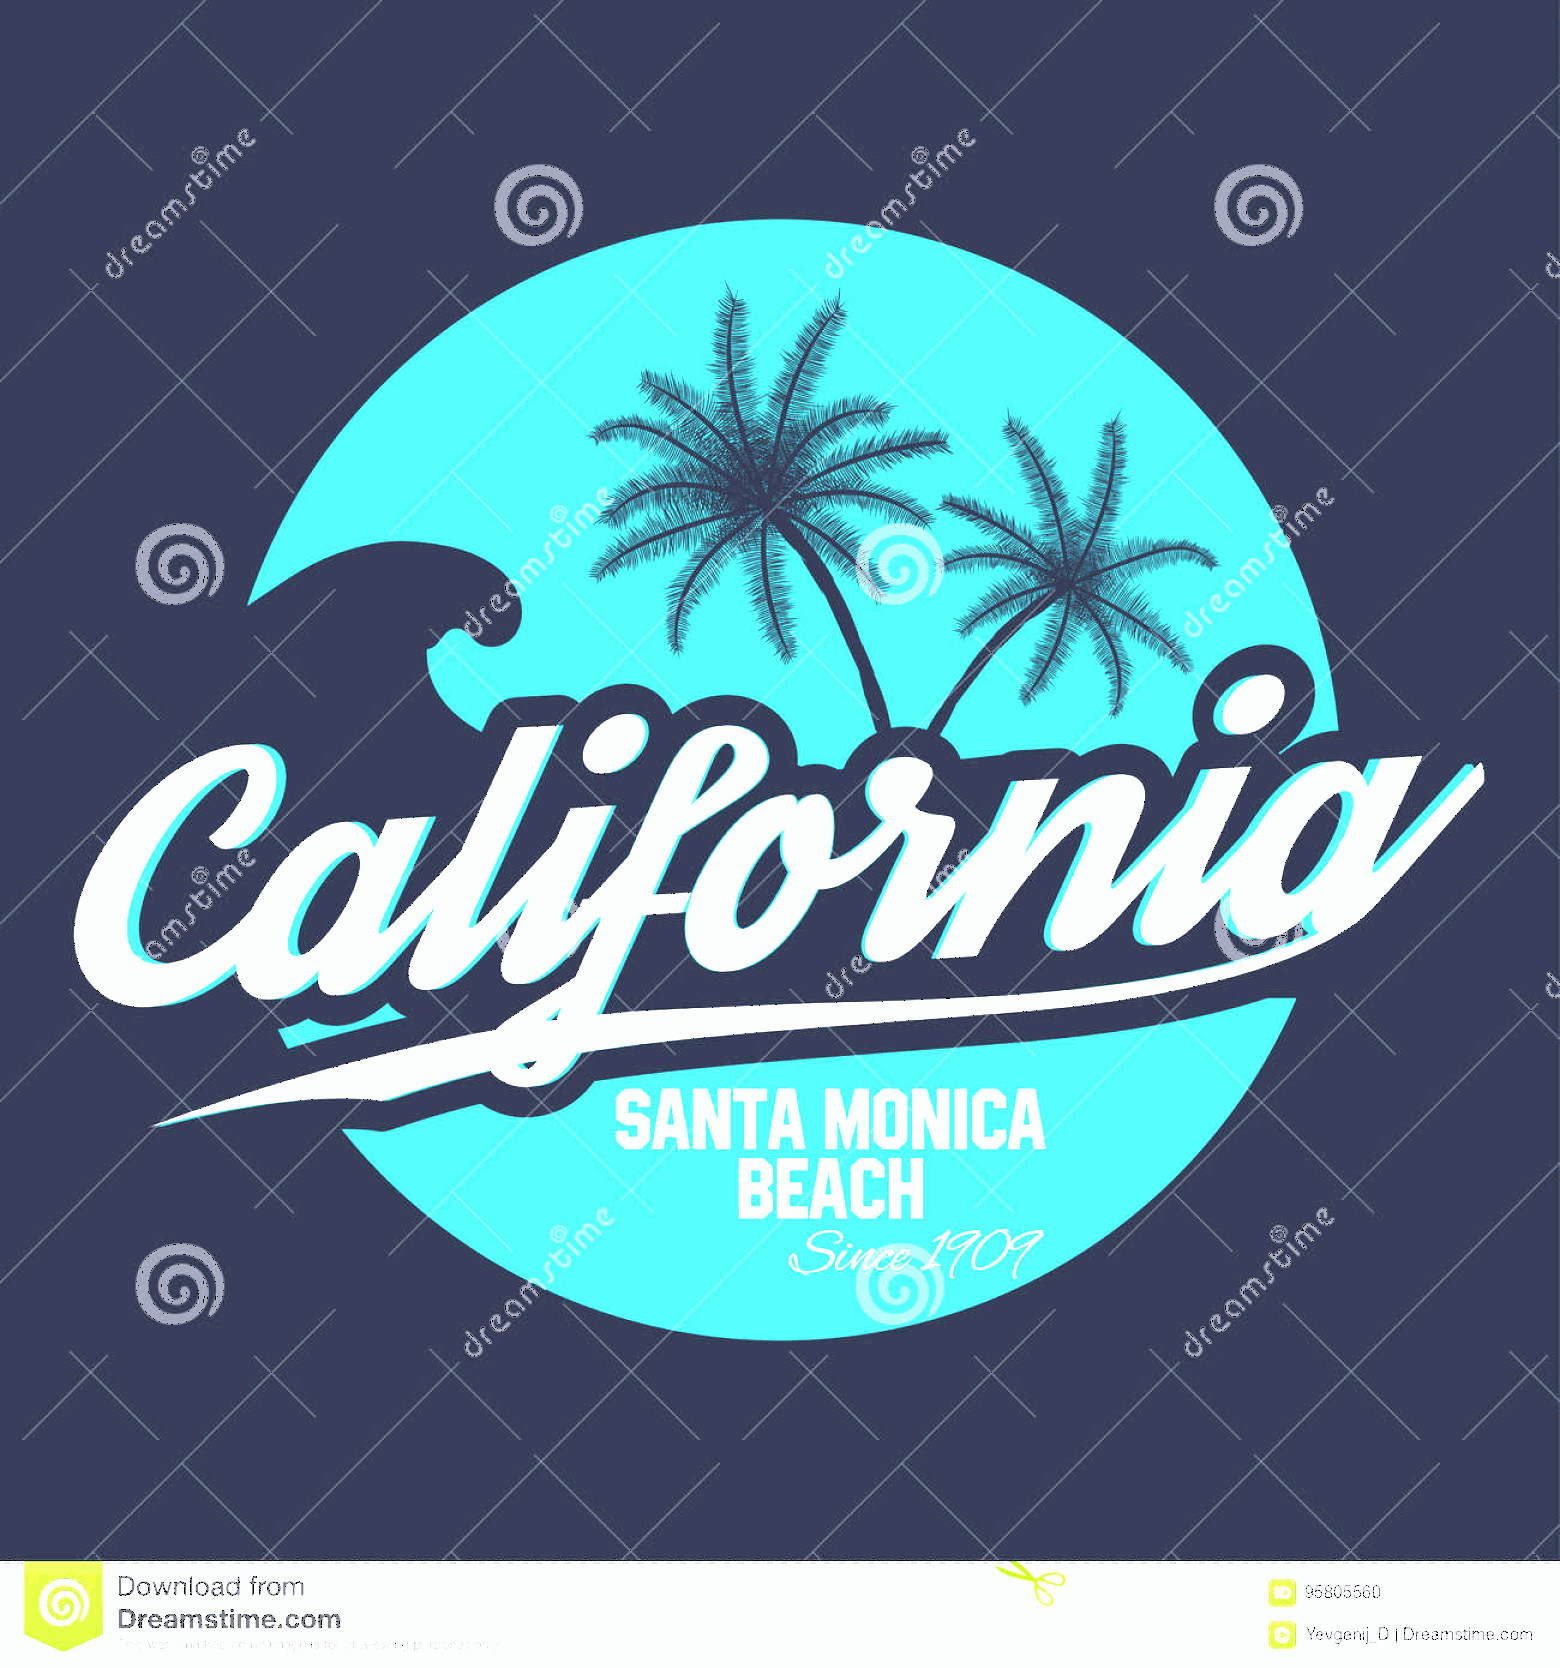 Vectorgraph 80s: Stock Illustration S Style Surf Sport Typography T Shirt Graphic California Tee Graphic Vector Image